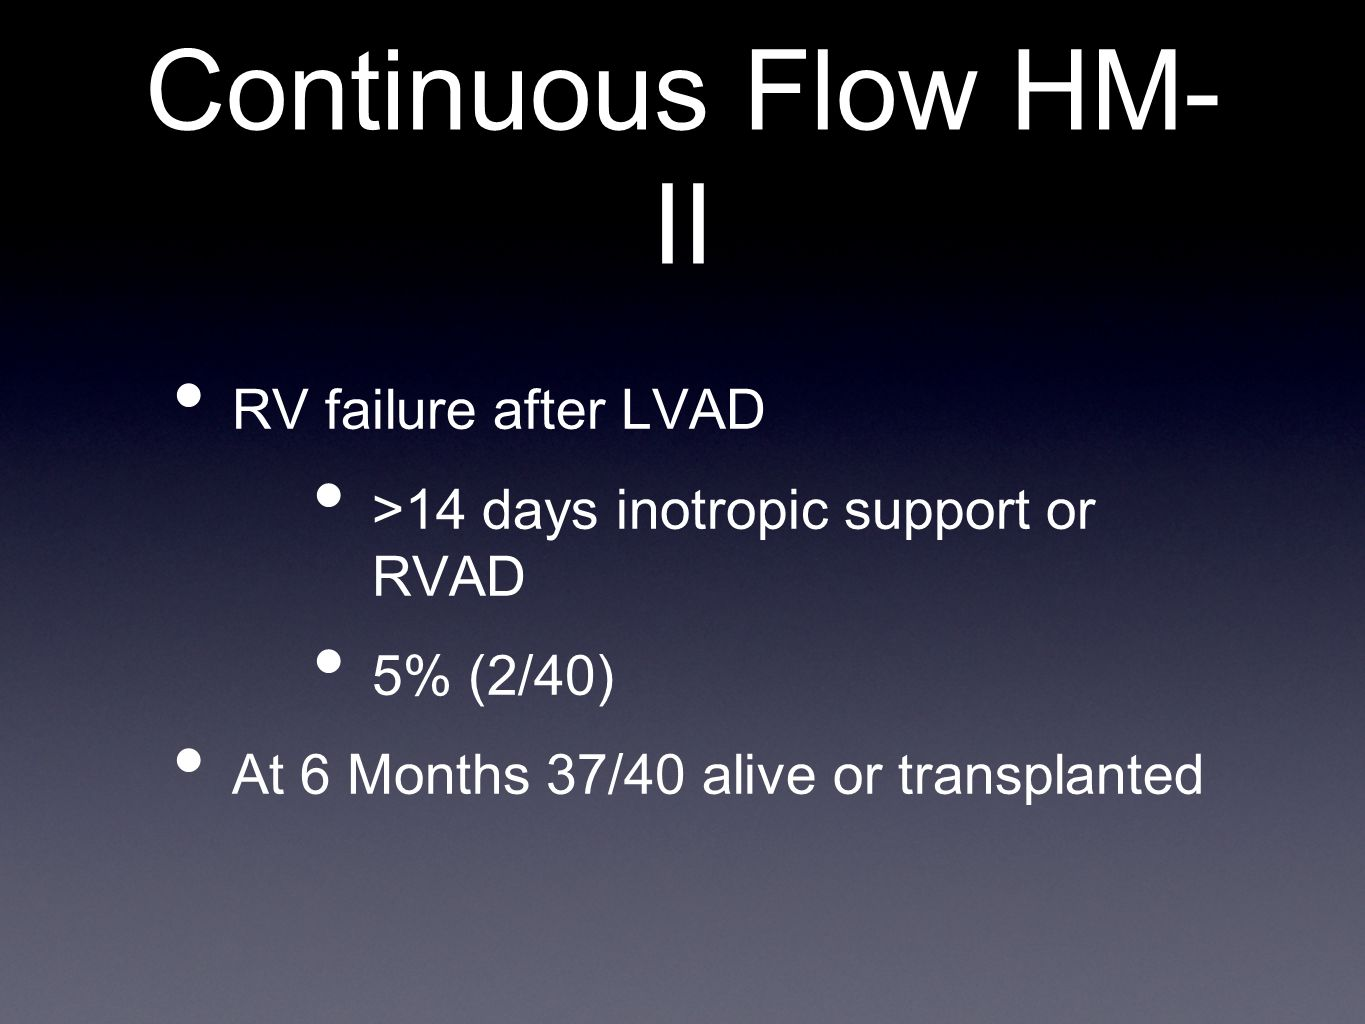 Continuous Flow HM-II RV failure after LVAD